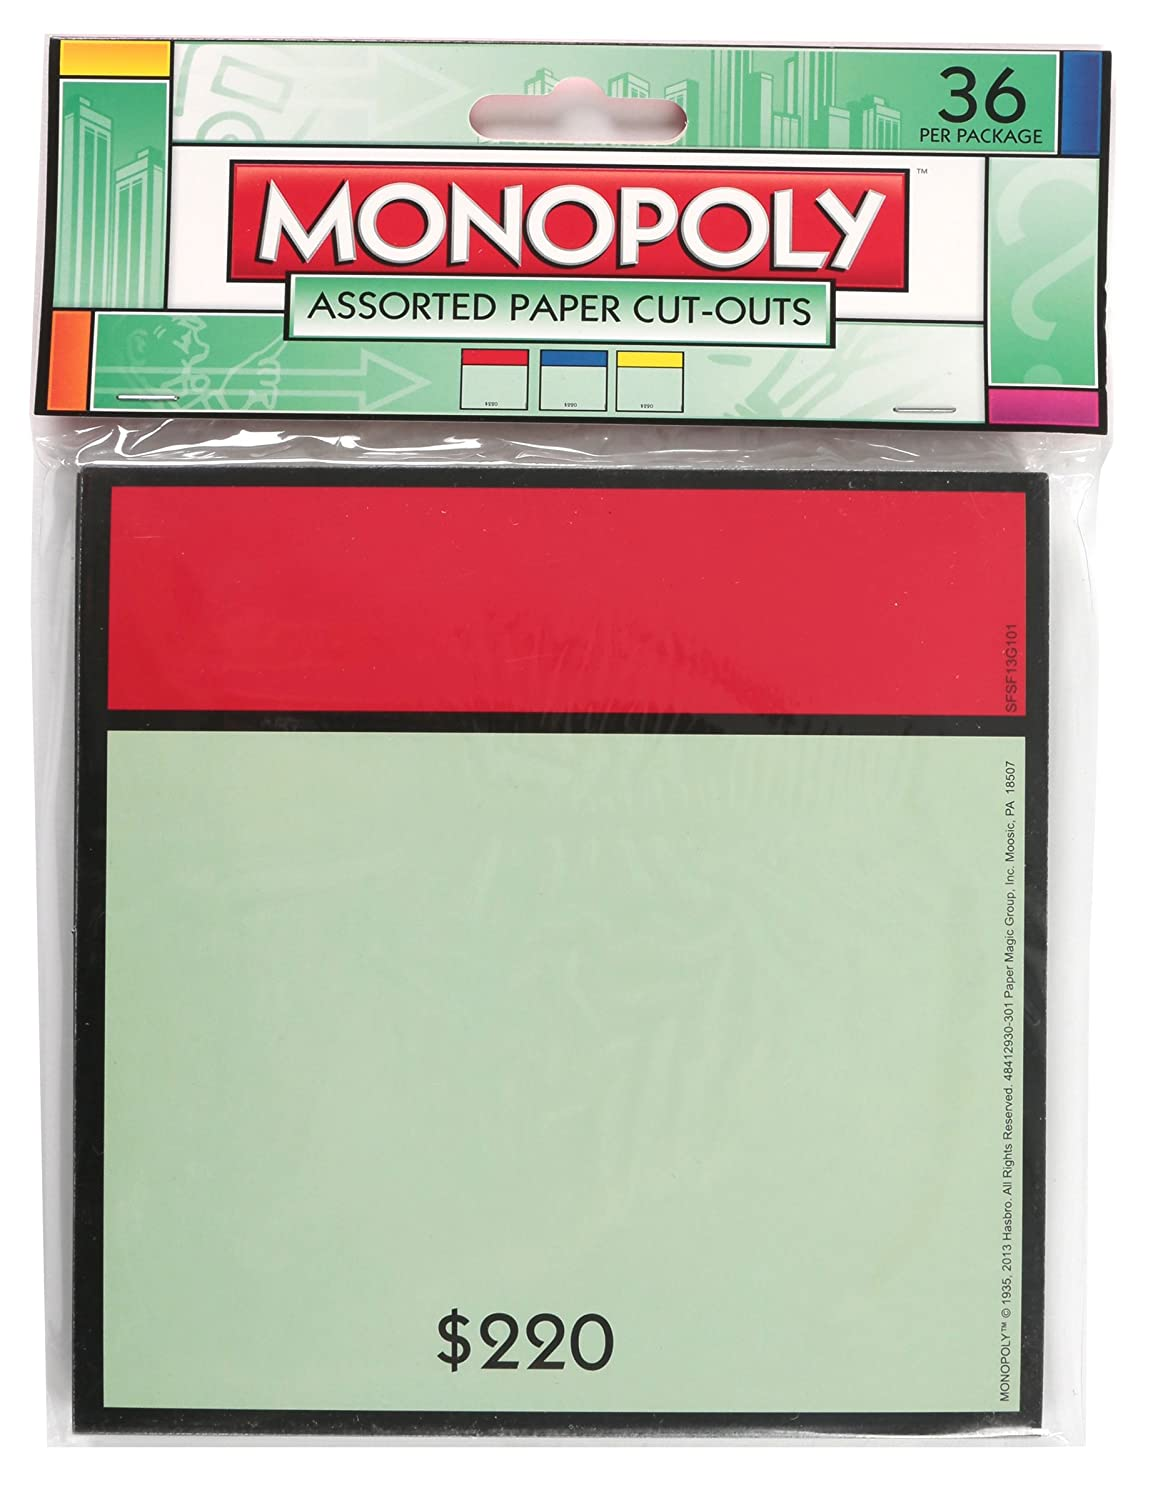 Paper Magic 841293 Eureka Monopoly Assorted Paper Cut-Outs, 12 Each of 3 Different Designs, 36-Pieces Paper Magic Group